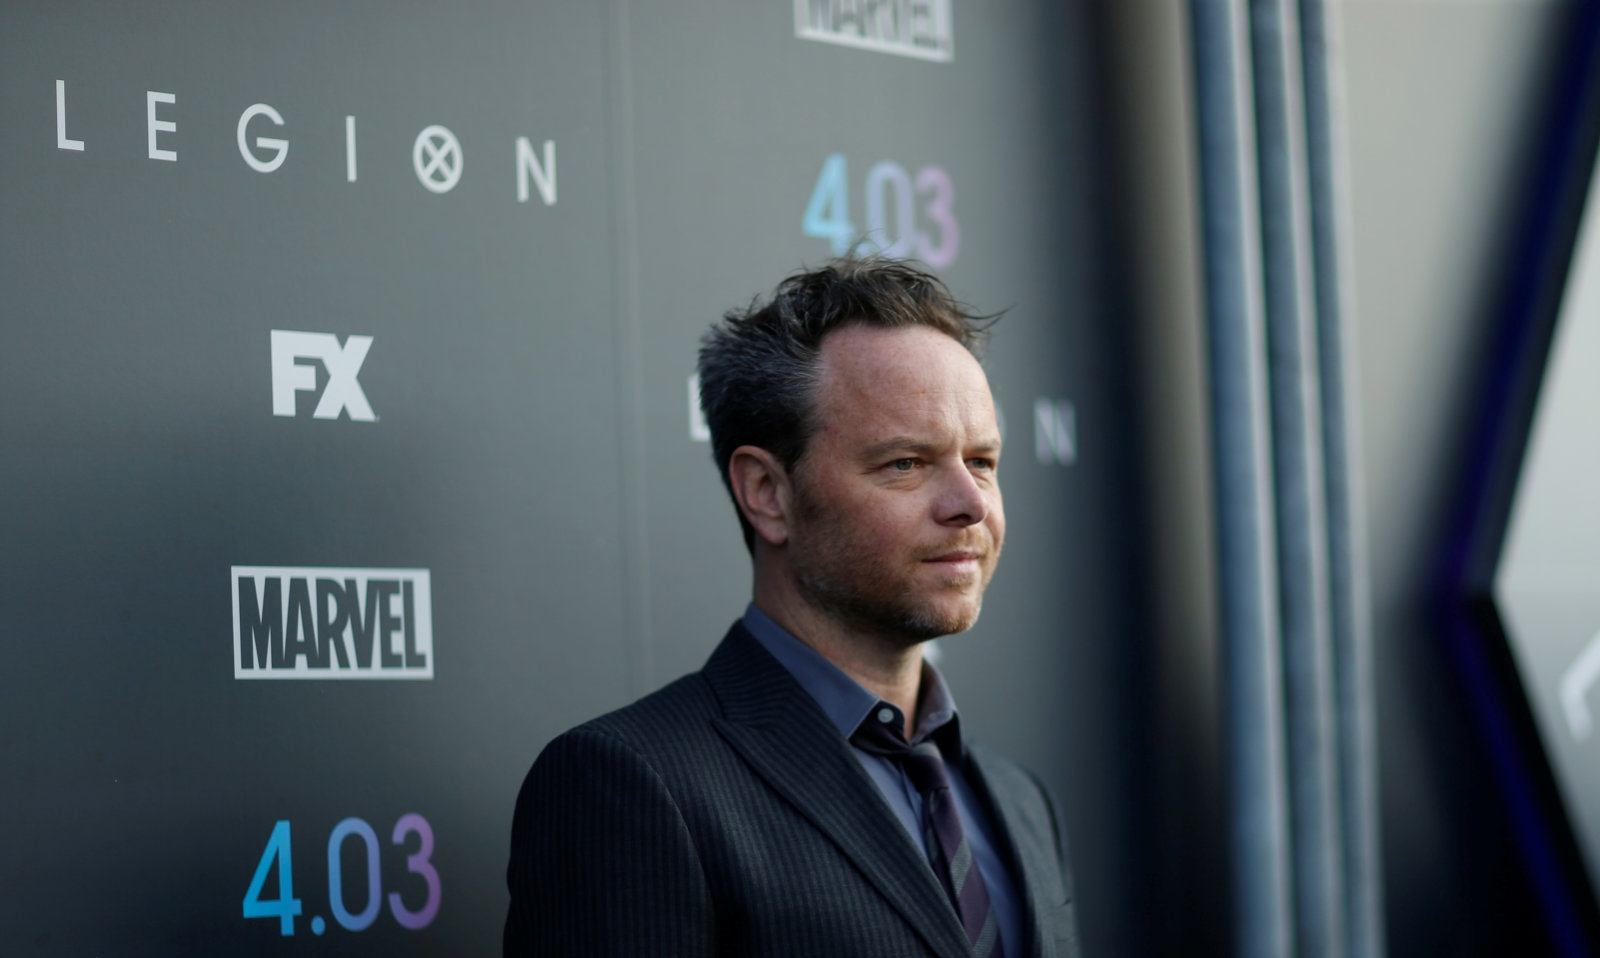 Next 'Star Trek' movie will be written and directed by Noah Hawley | DeviceDaily.com